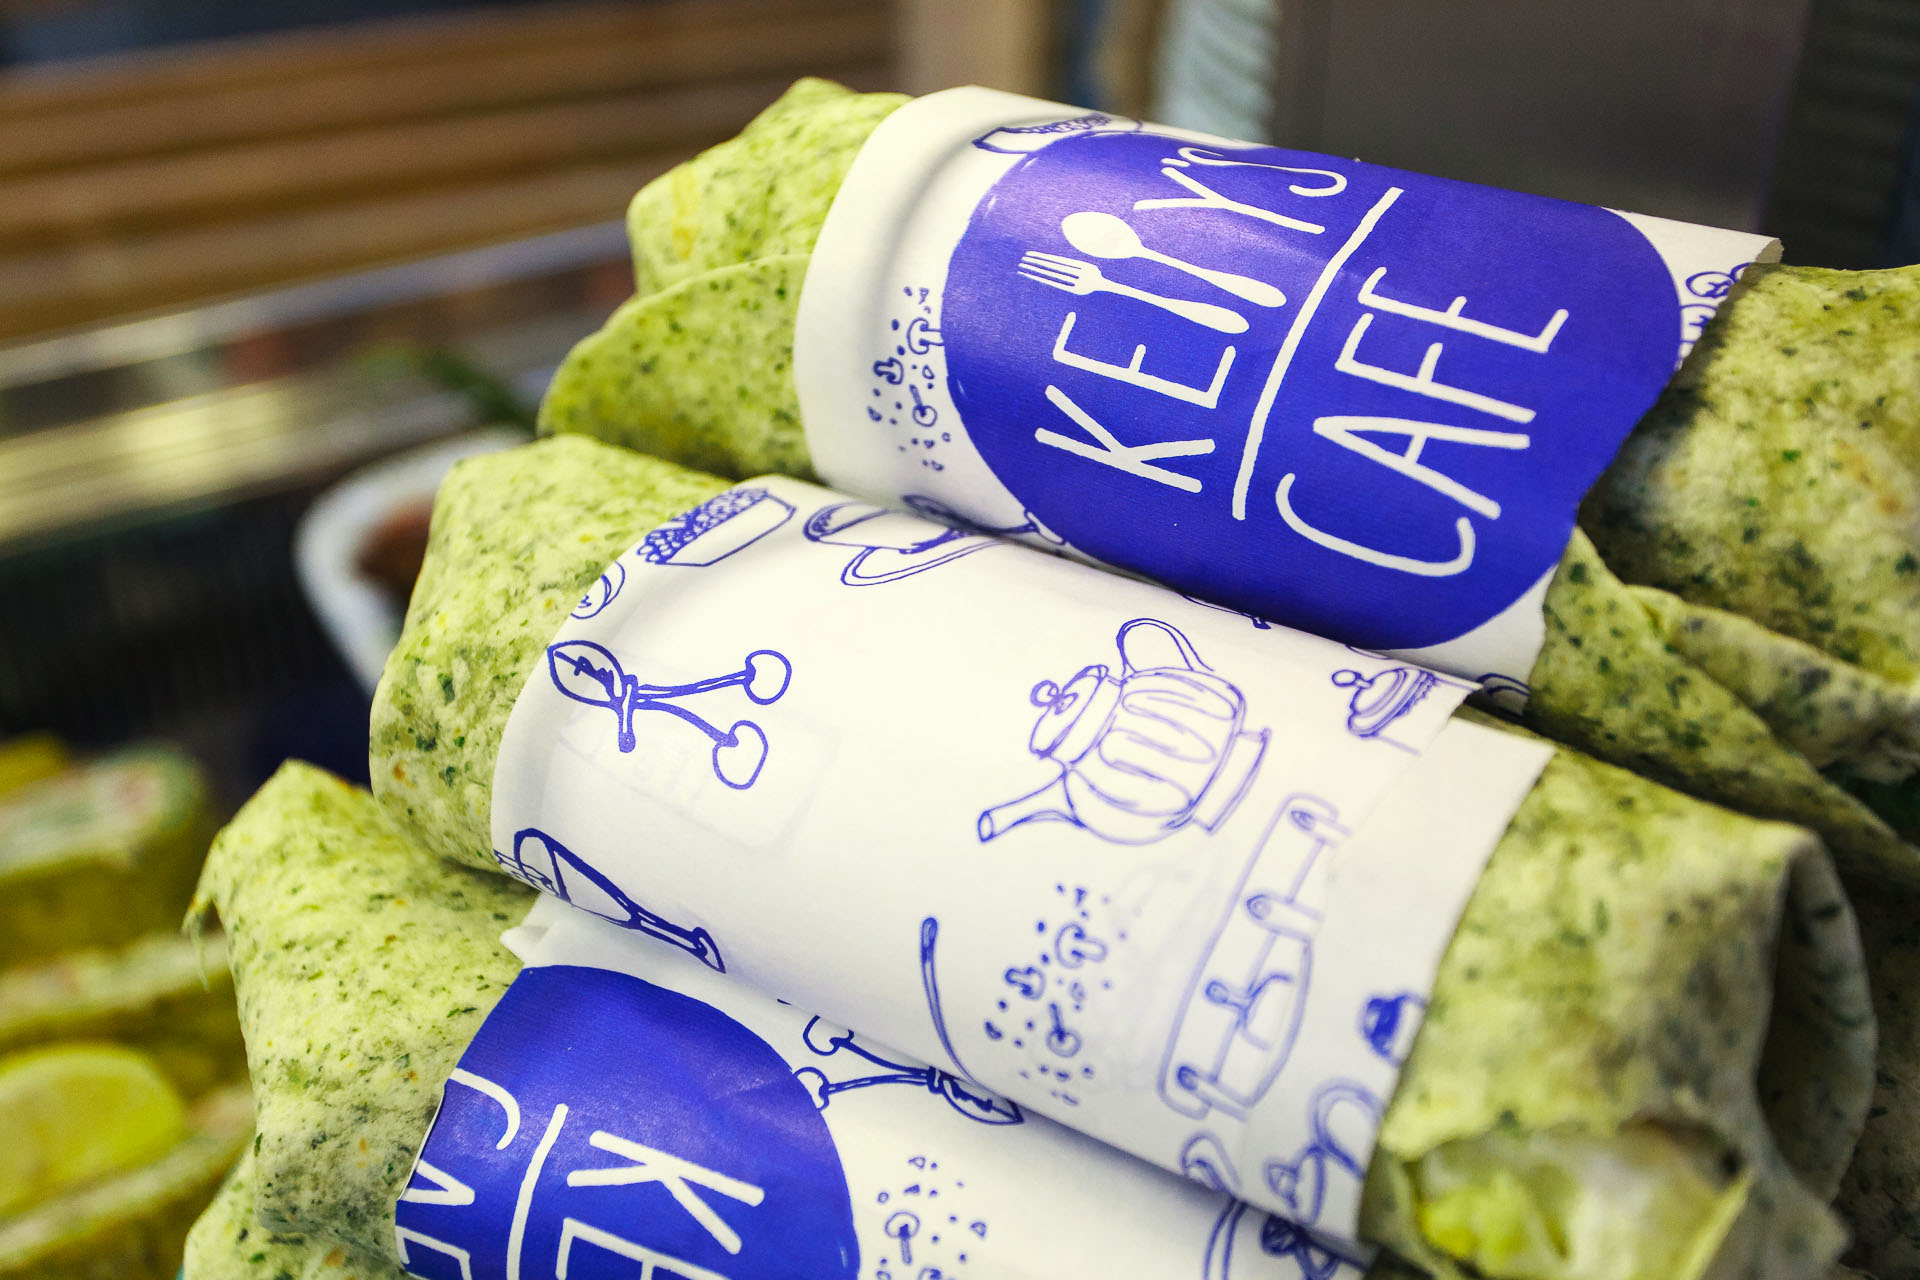 kellys-cafe-superfood-spinach-wrap